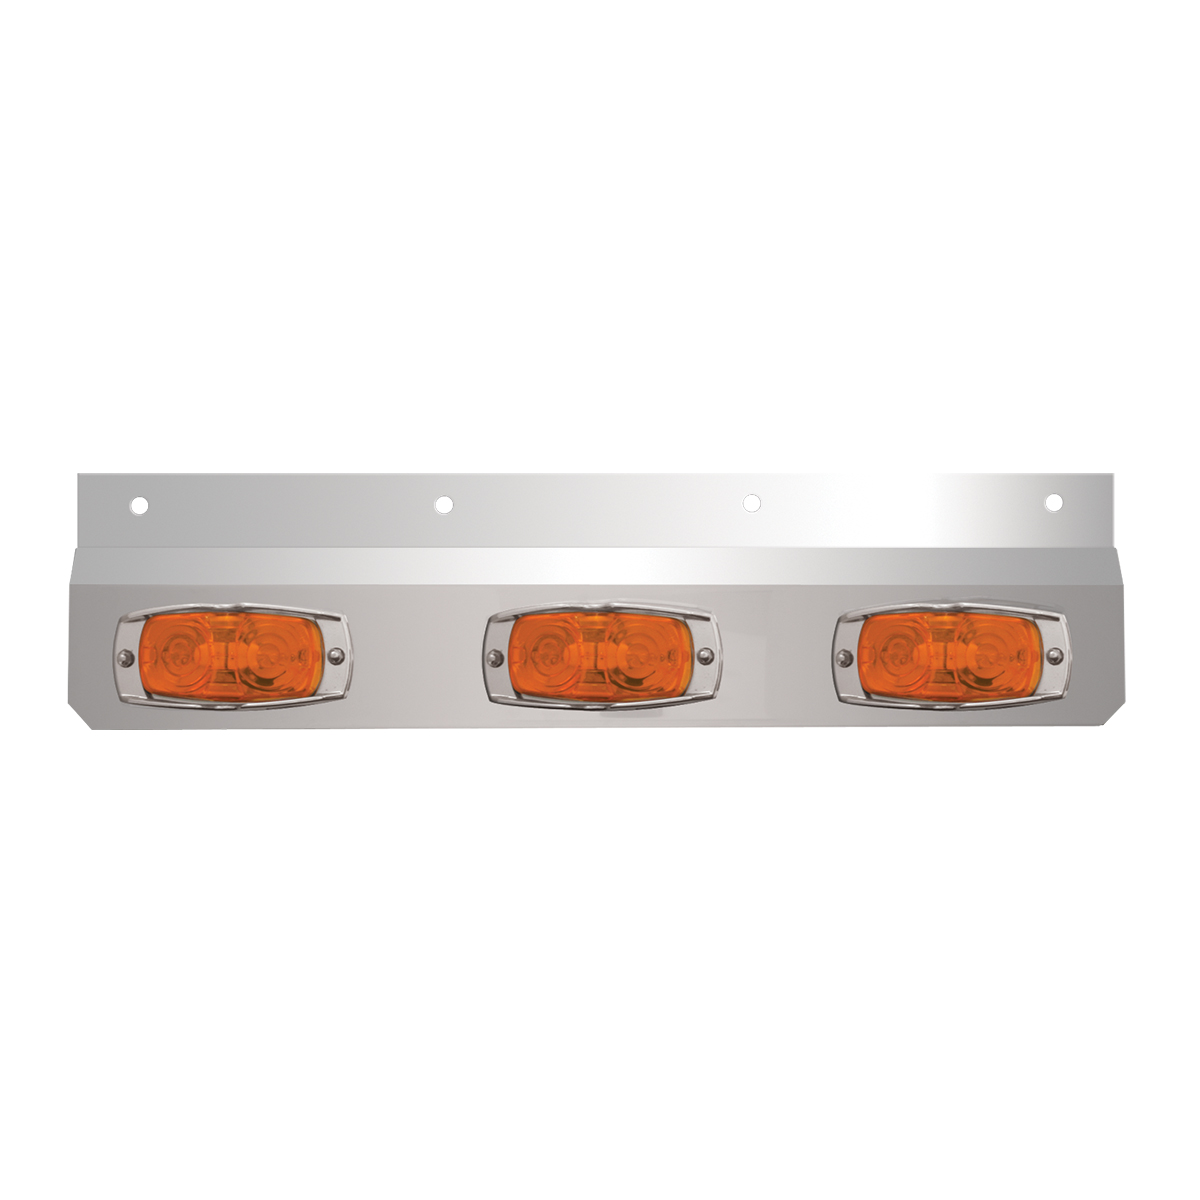 #30641 Stainless Steel Lighted Top Plate with Cat-Eye Lights - Amber